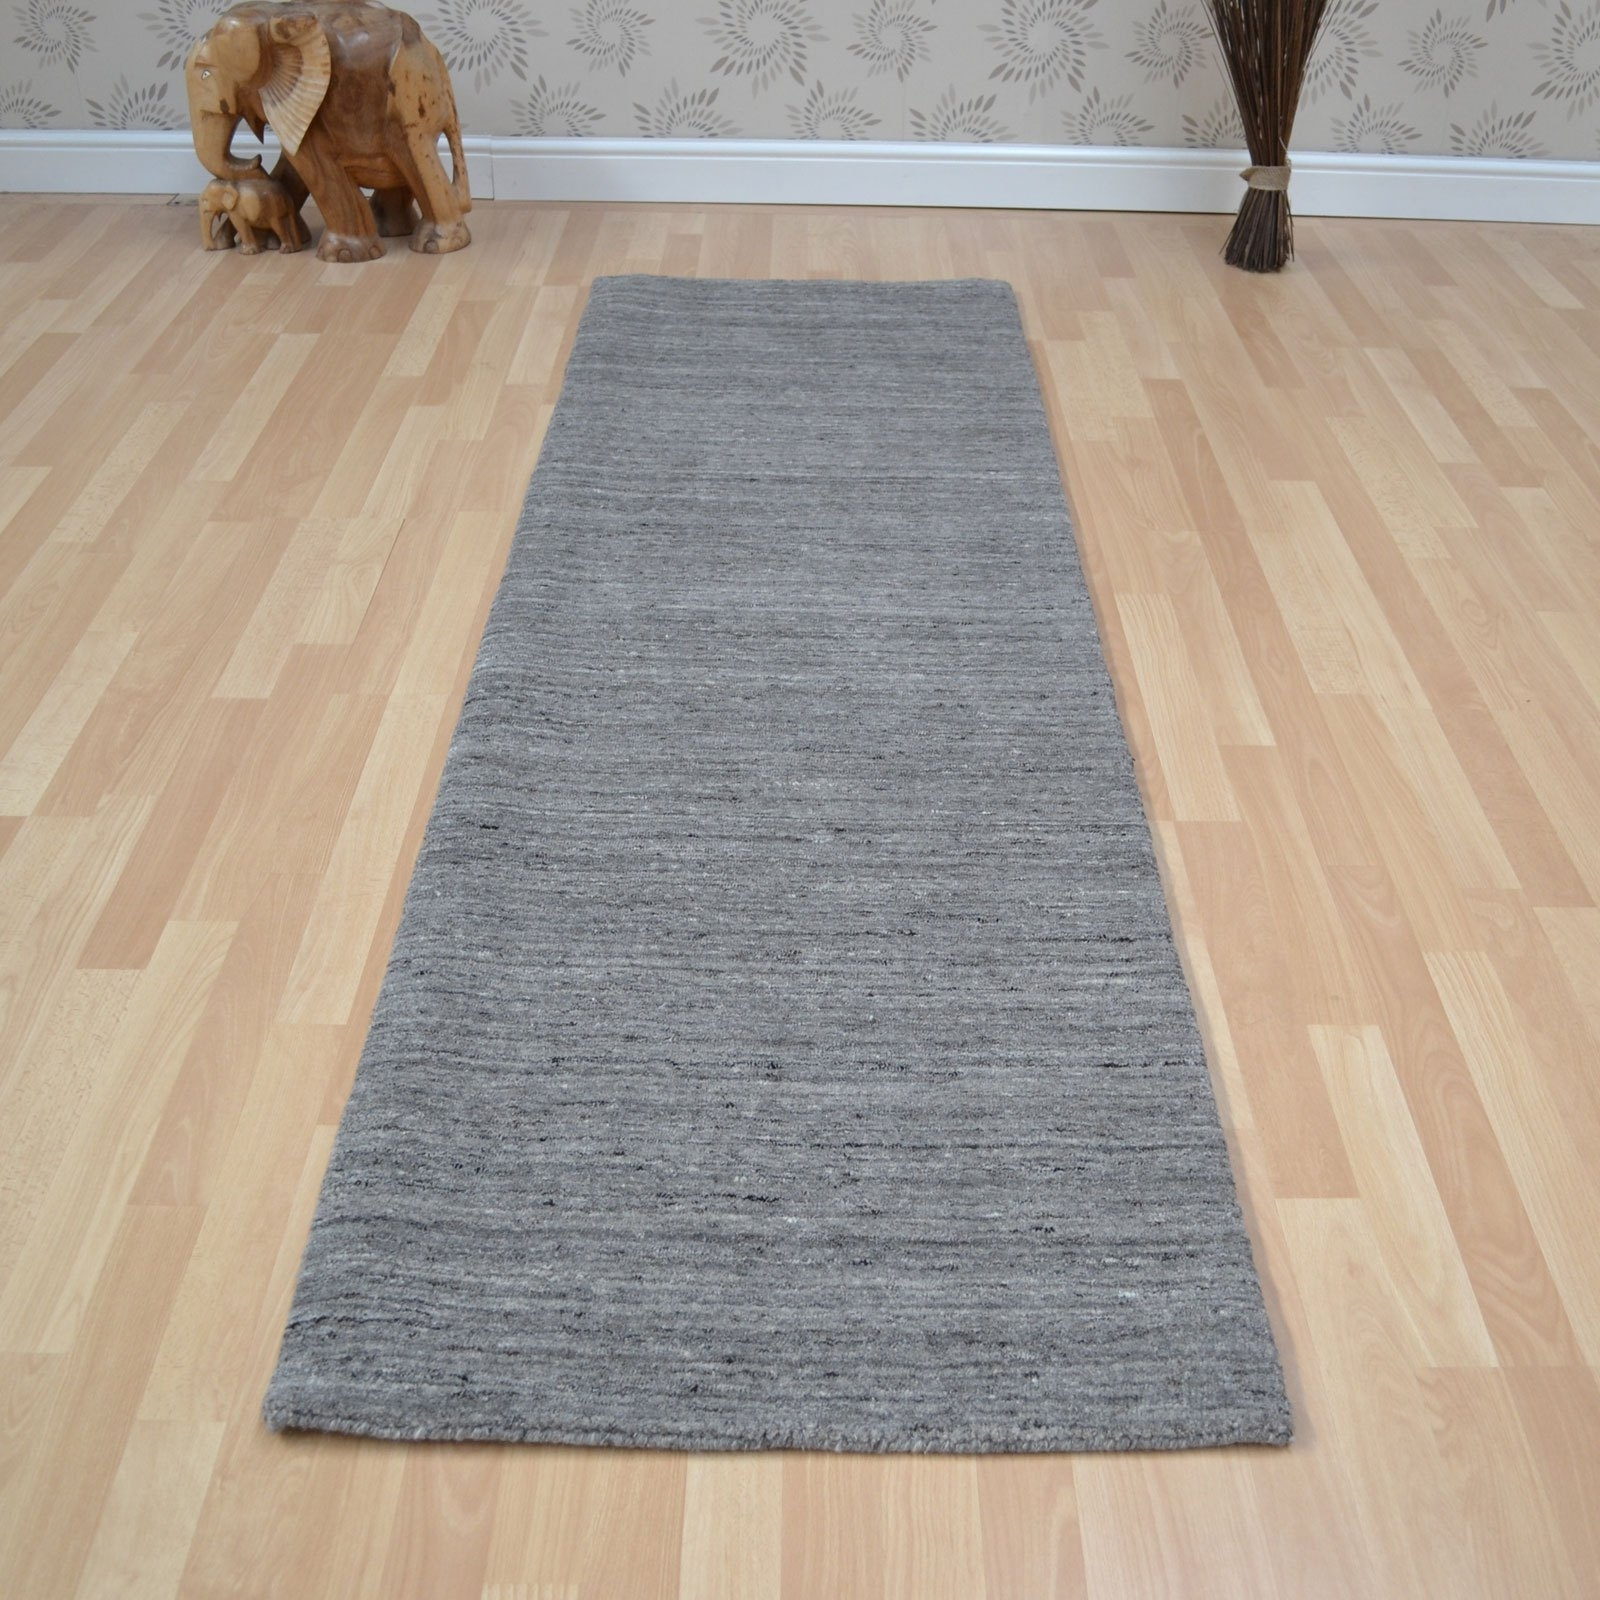 rug runners for kitchen table with bench seating 20 collection of hallway